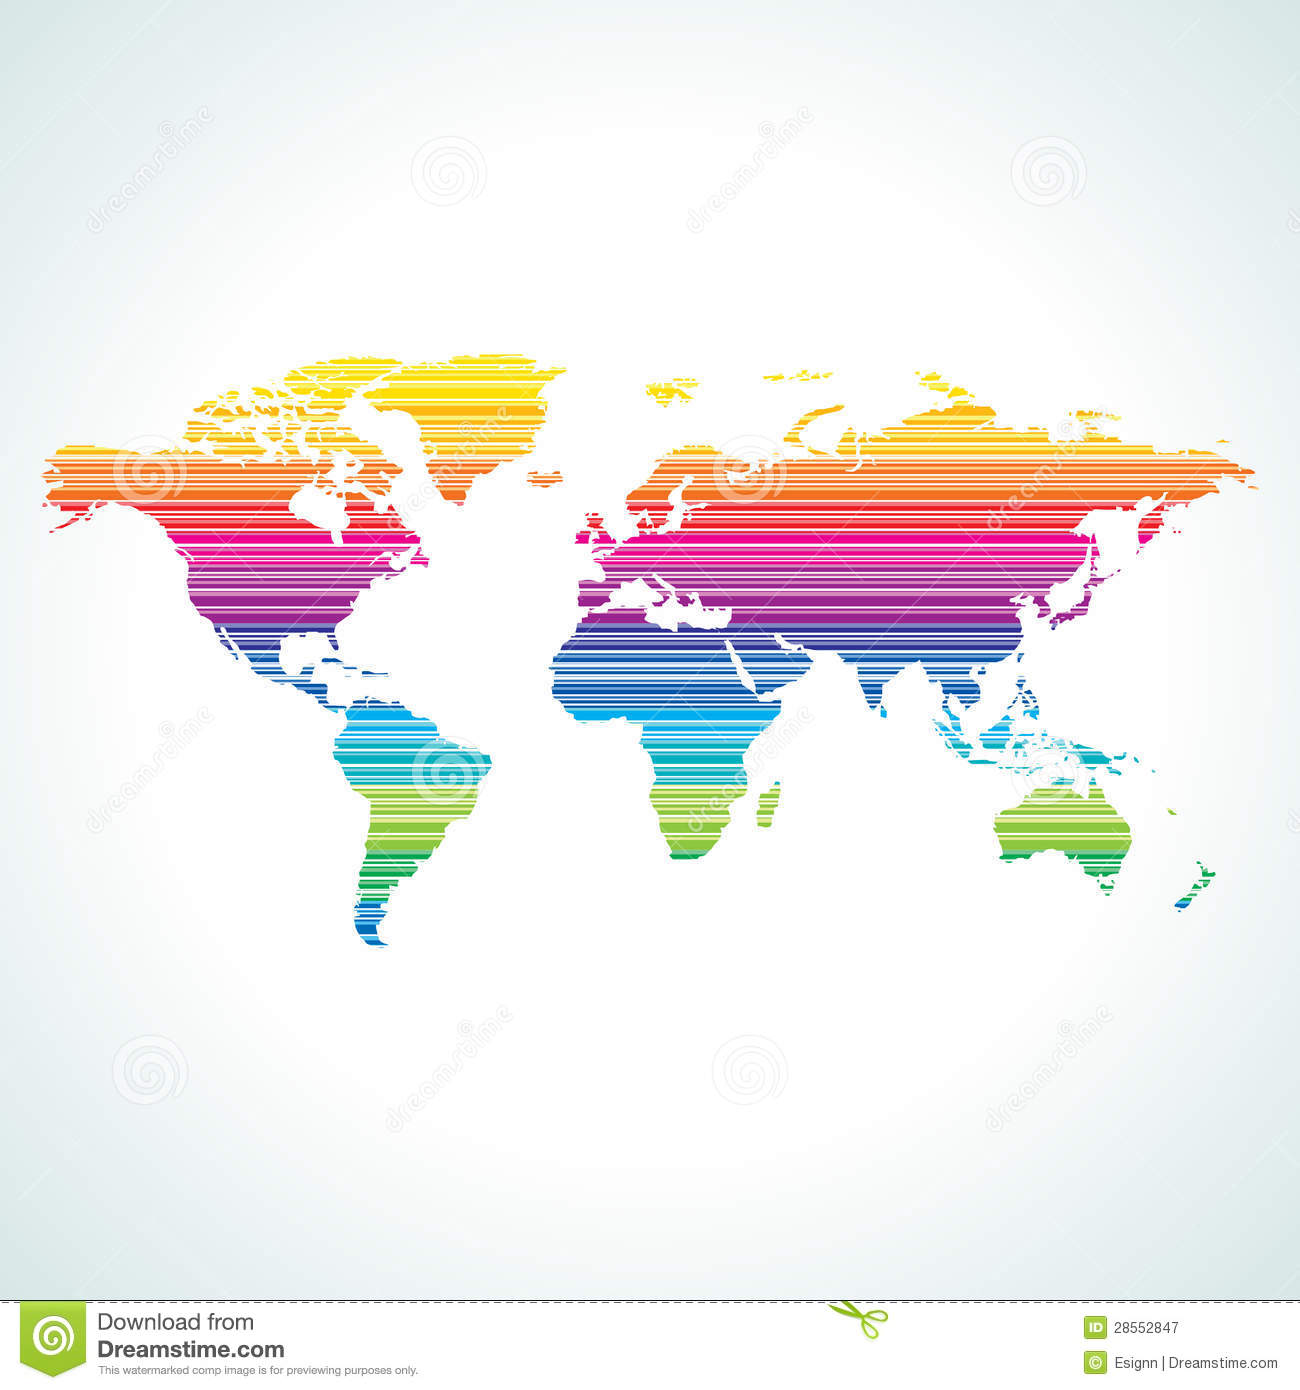 Digital world map design with stripe pattern stock vector digital world map design with stripe pattern gumiabroncs Choice Image